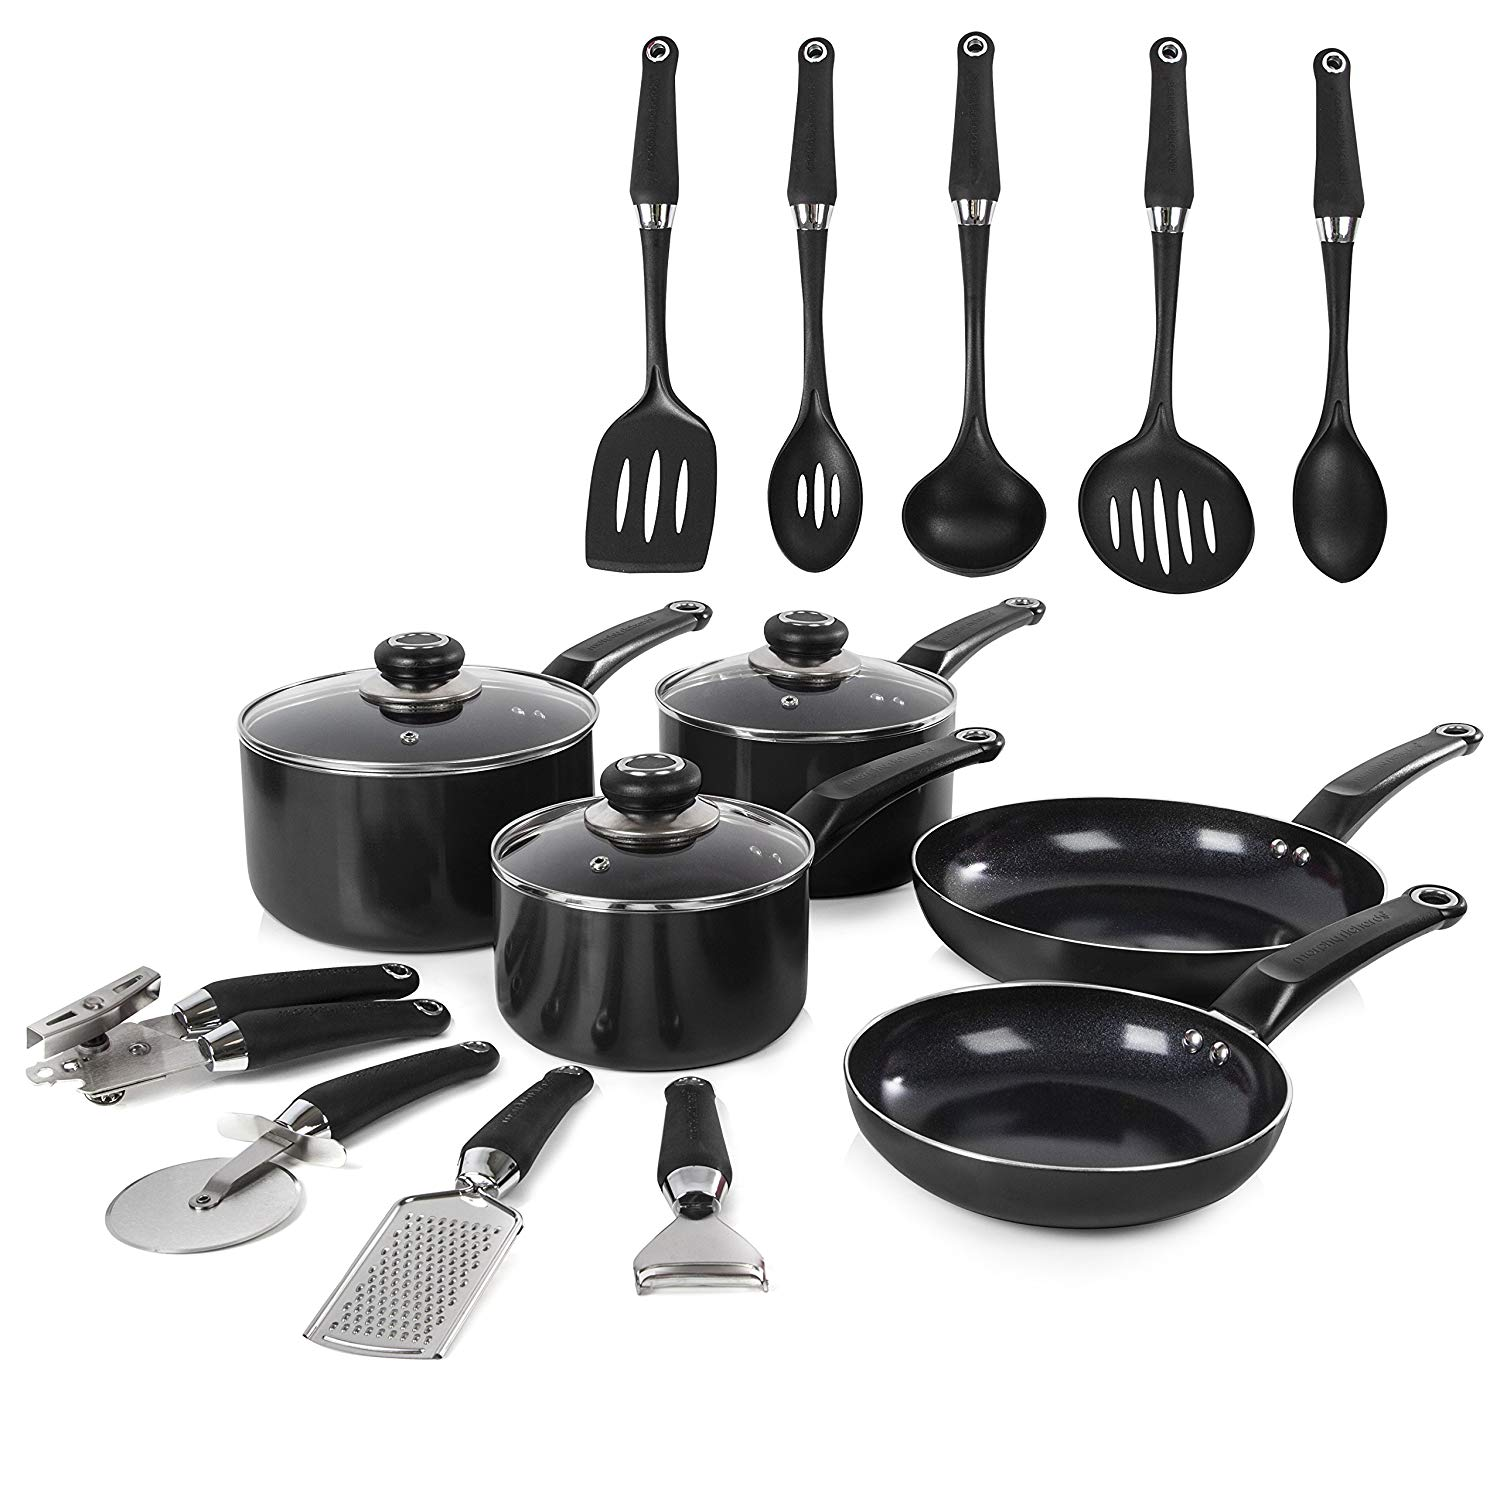 Morphy Richards Equip Frying Pan and Saucepan Set 5 Piece with 9 Piece Tool Set , Aluminium